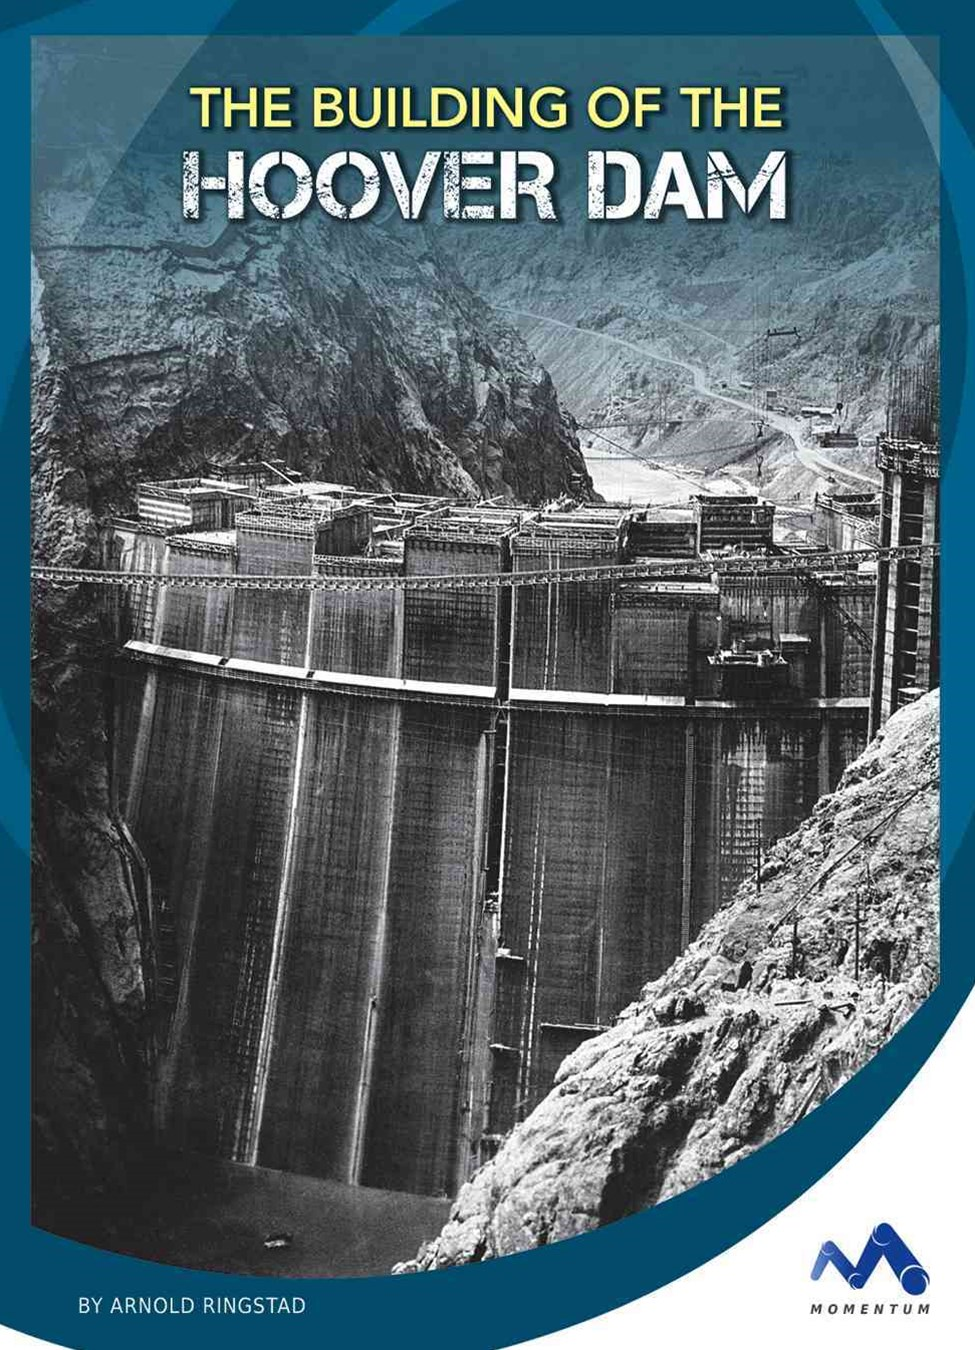 The Building of the Hoover Dam